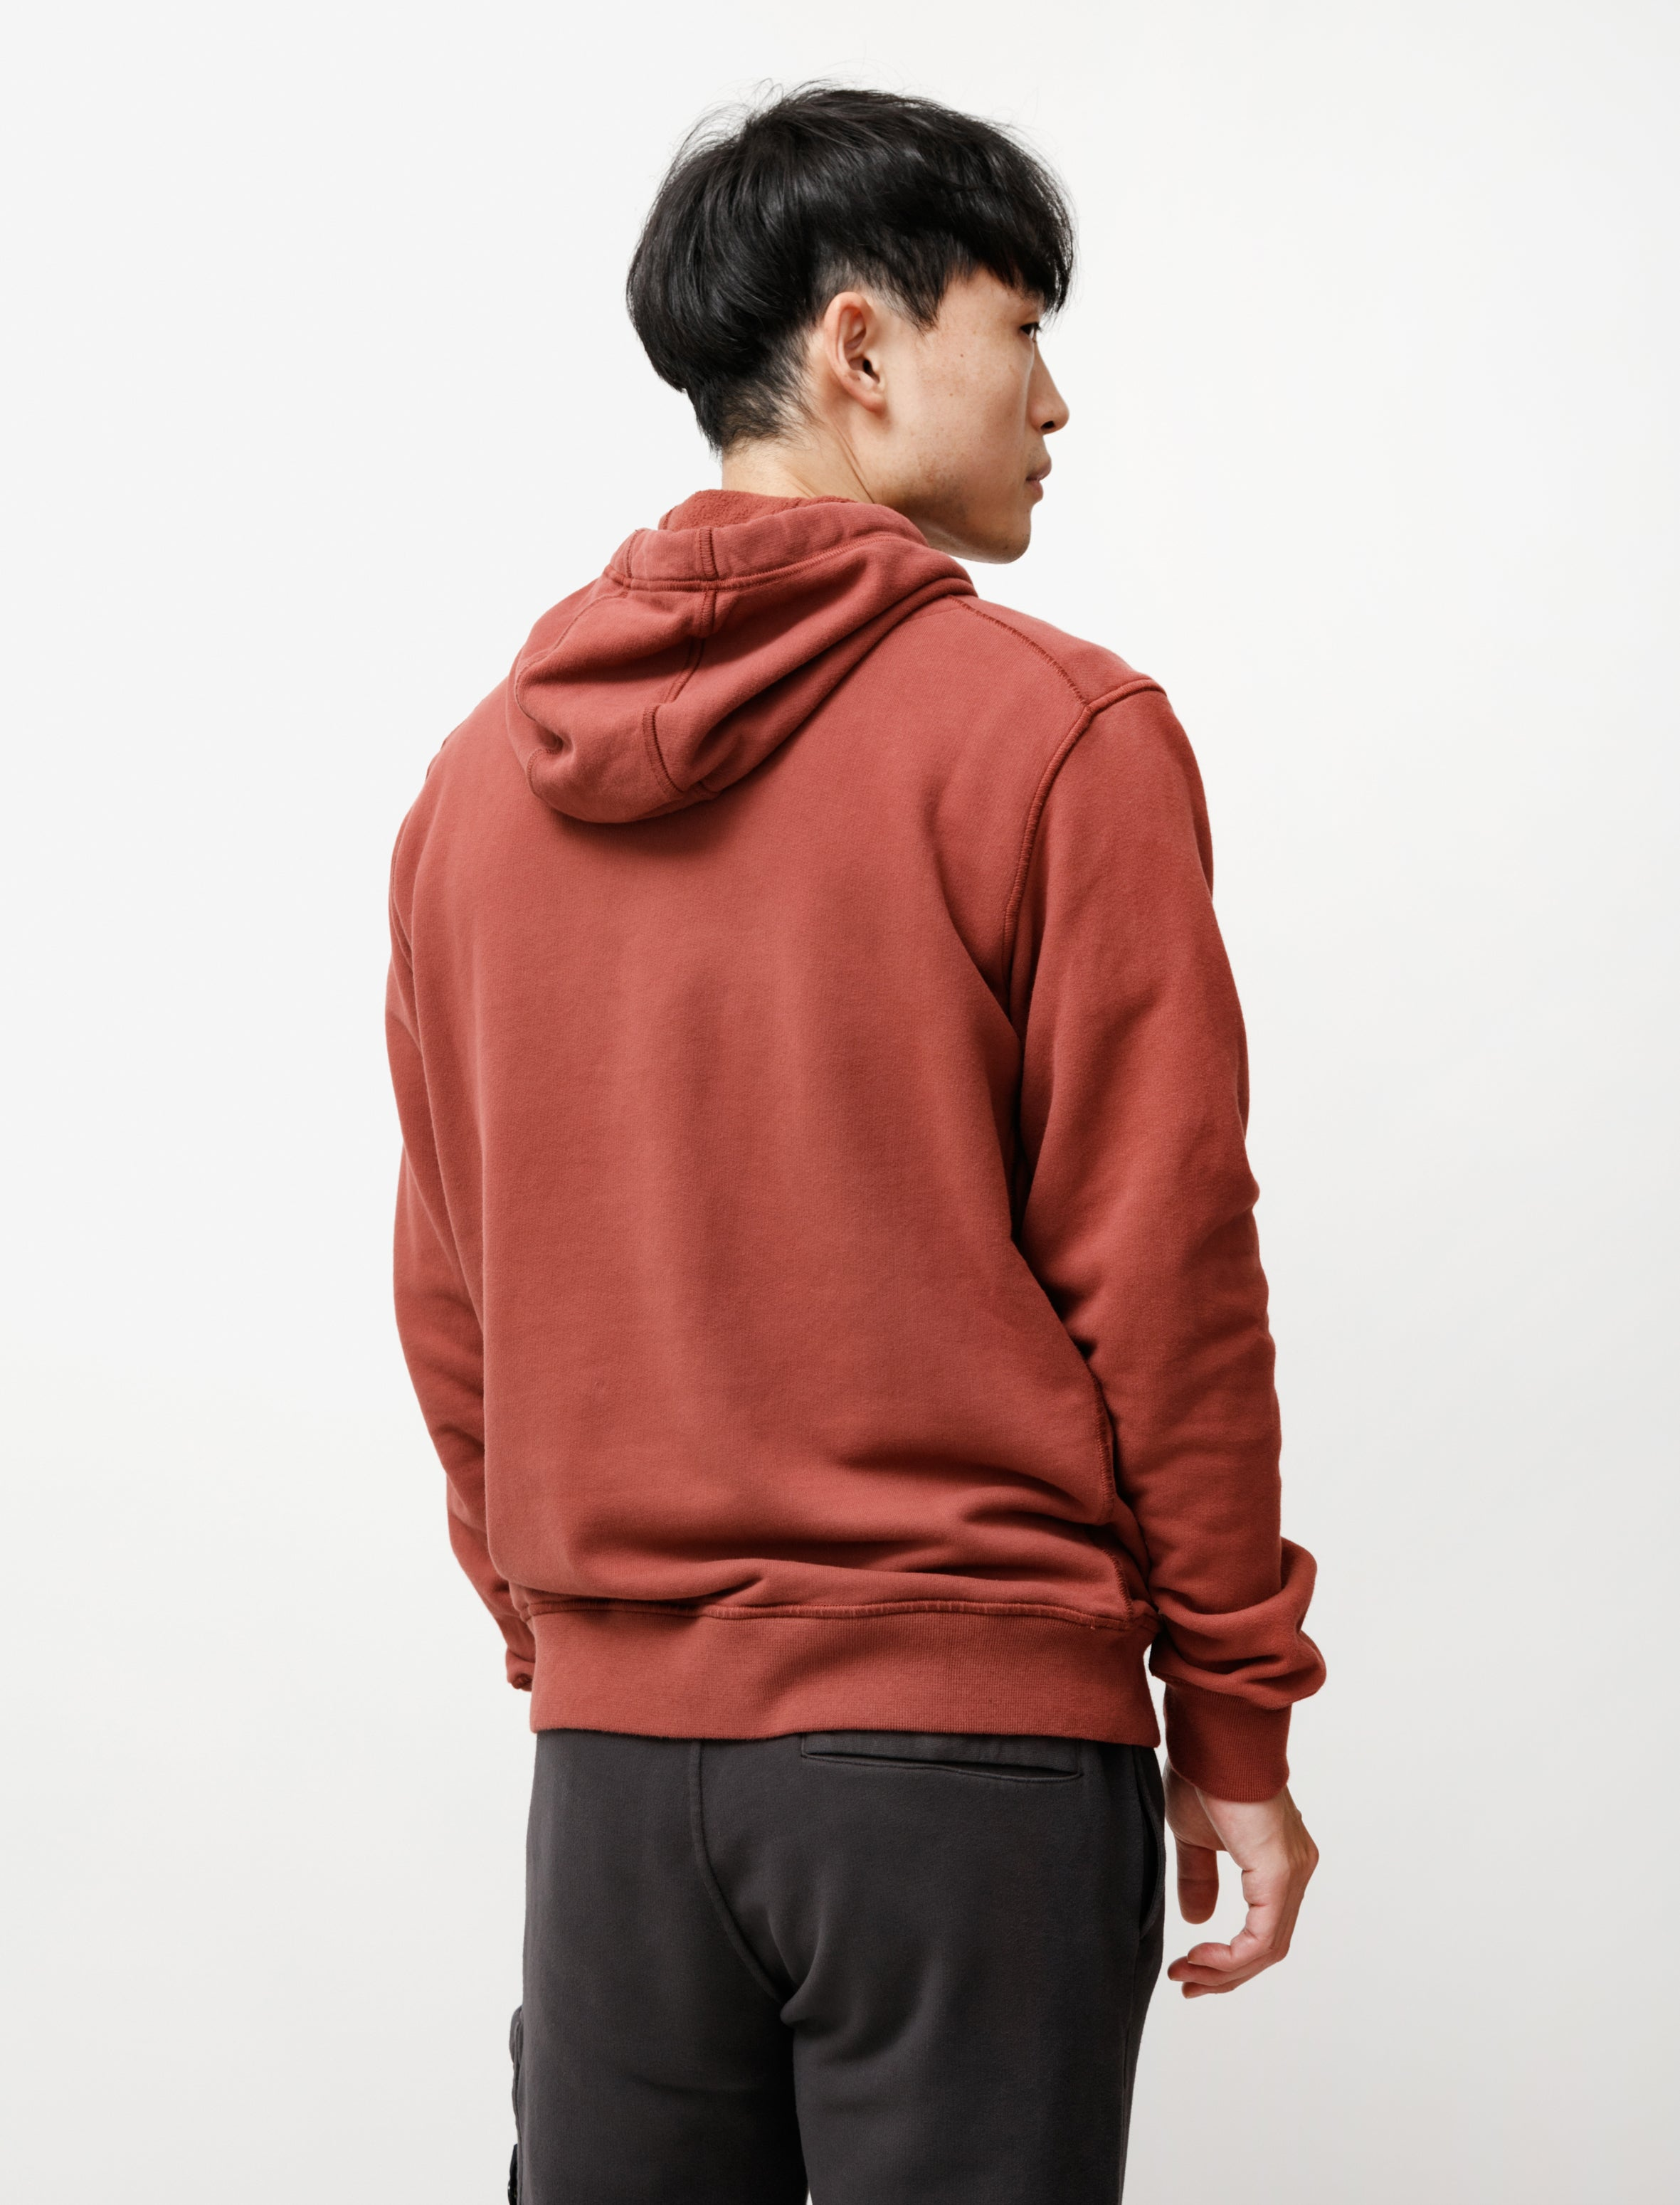 Stone Island Hooded Sweatshirt Dark Burgundy